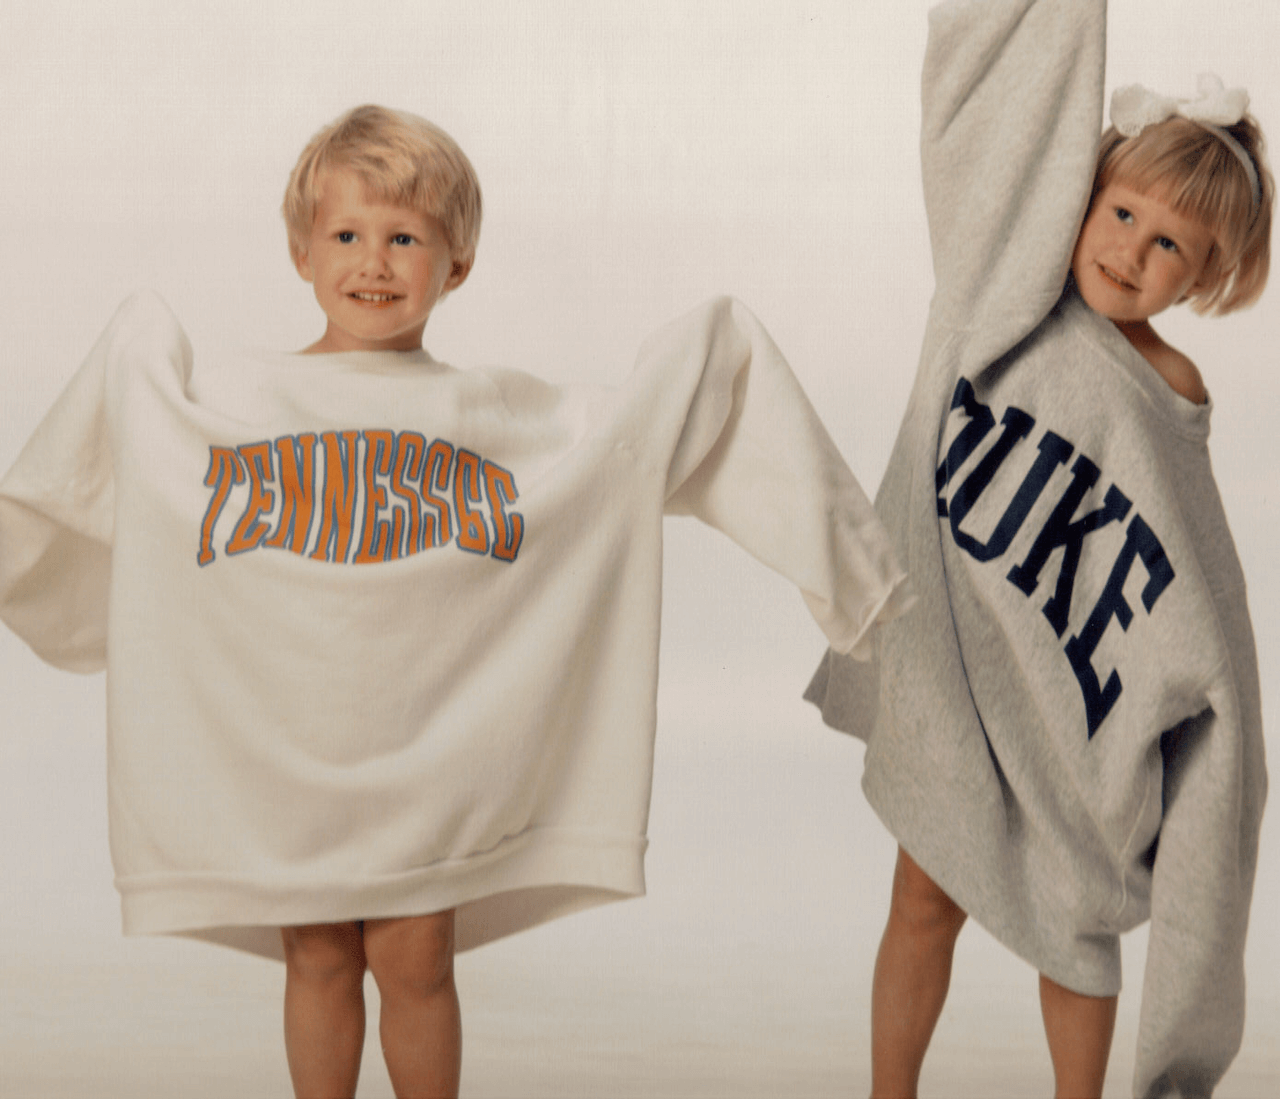 James and Lizzy in Tennessee Duke sweatshirts photo by Kathy Miller